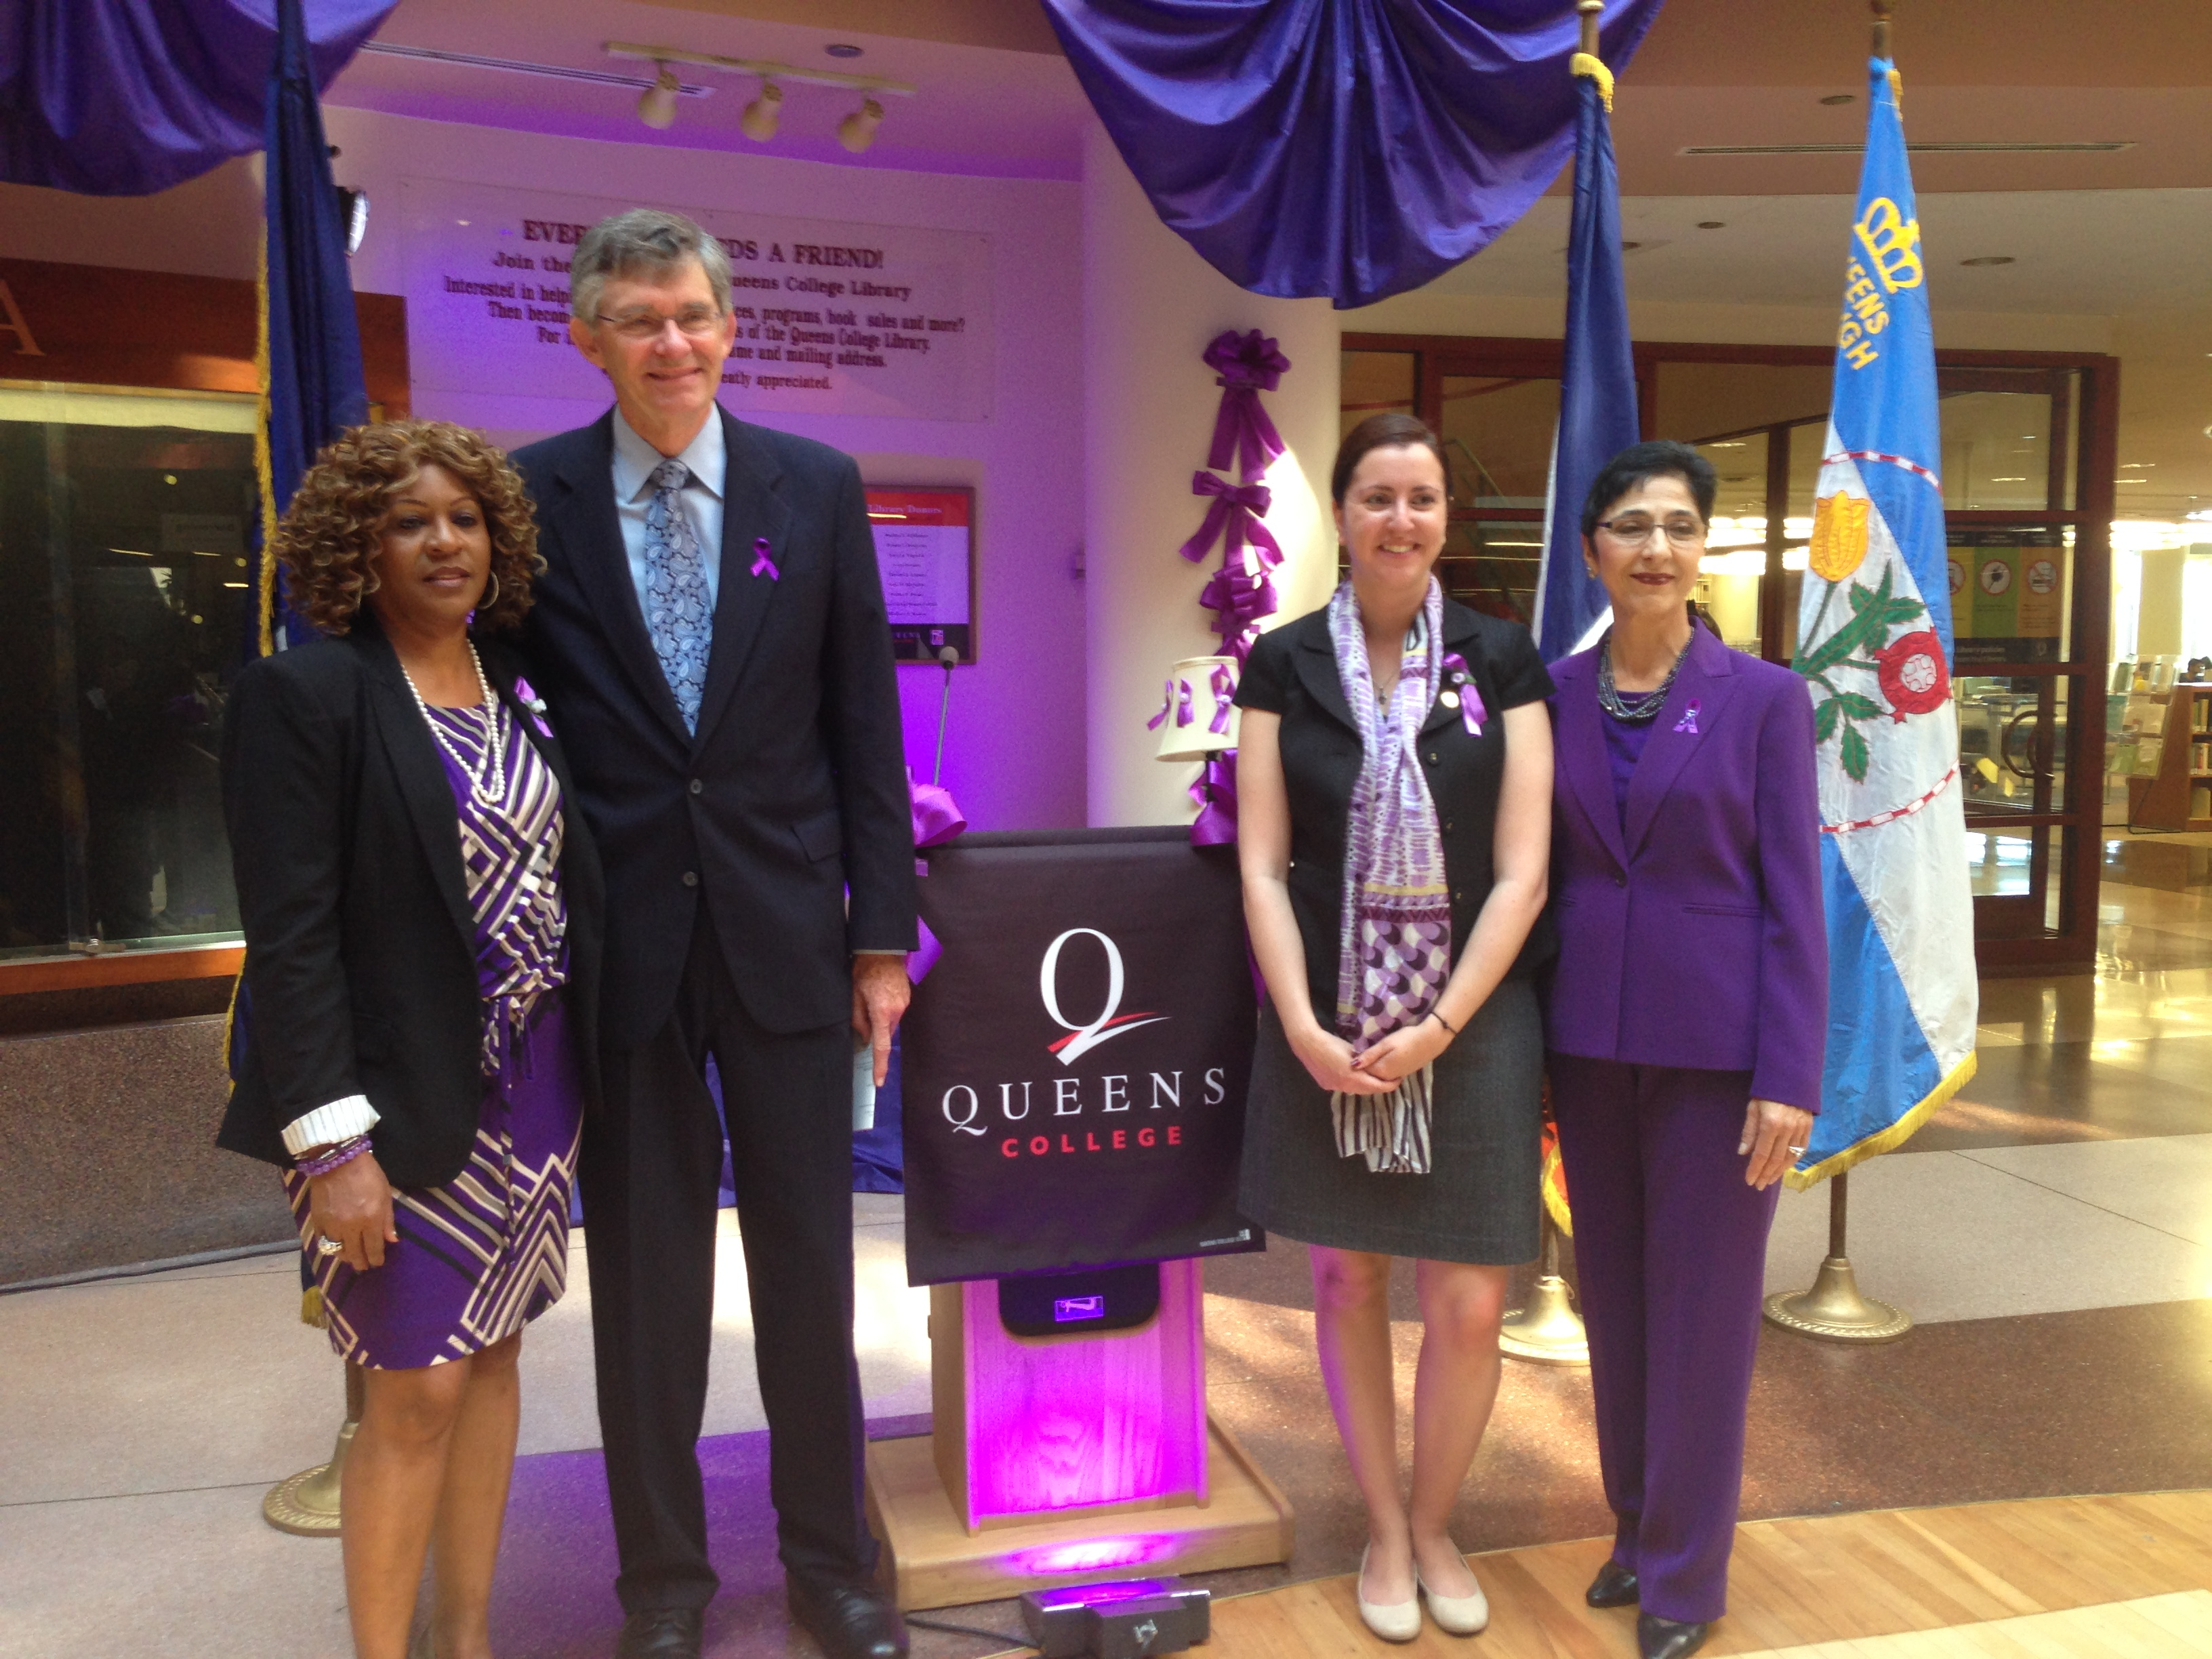 Assemblywoman Nily Rozic participated in the �Shine the Light on Domestic Violence� ceremony at Queens College to promote awareness on domestic violence.